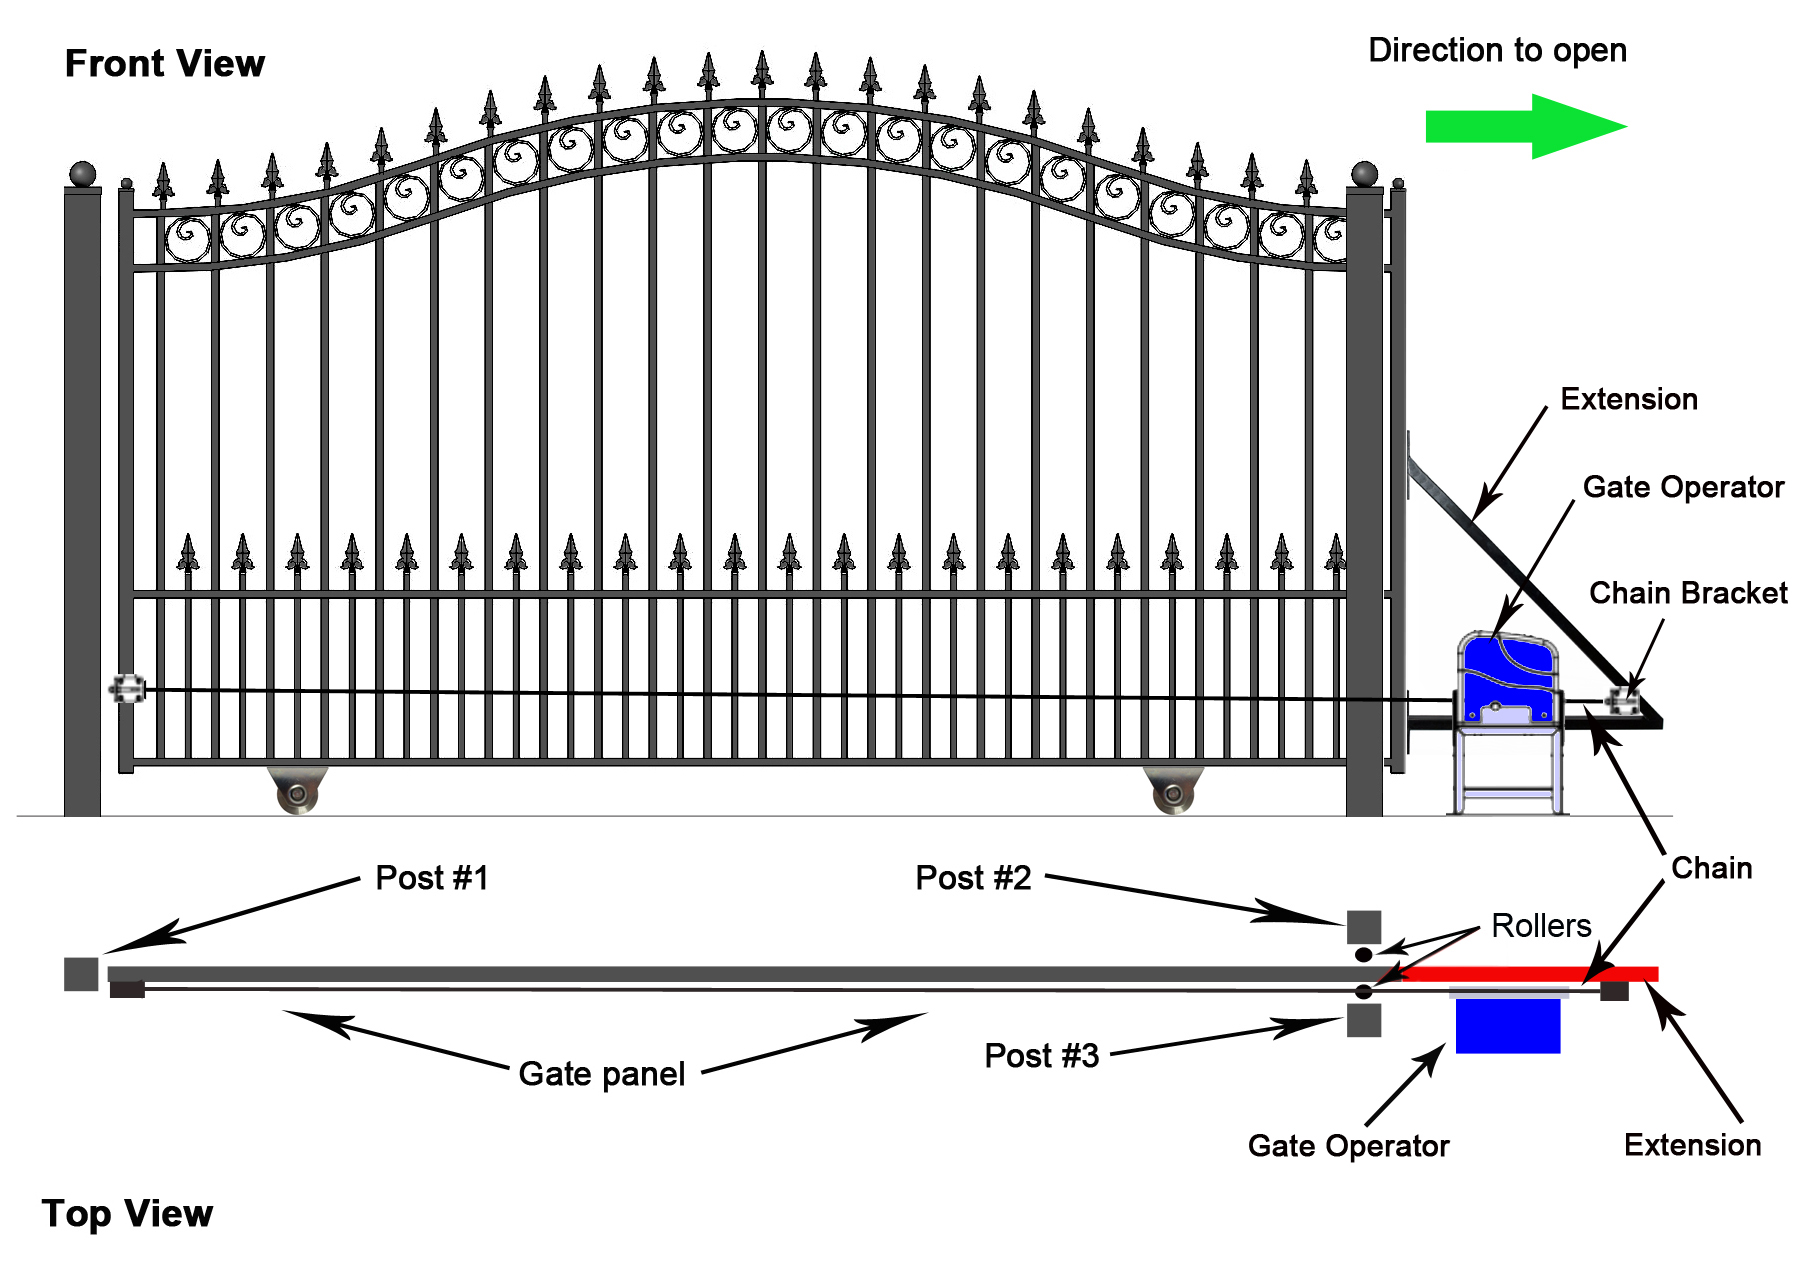 prague new single slide gate 12 with triangle_diagram_2 electric gate wiring diagram electric fence installation \u2022 wiring stanley 570 gate opener wiring diagram at readyjetset.co